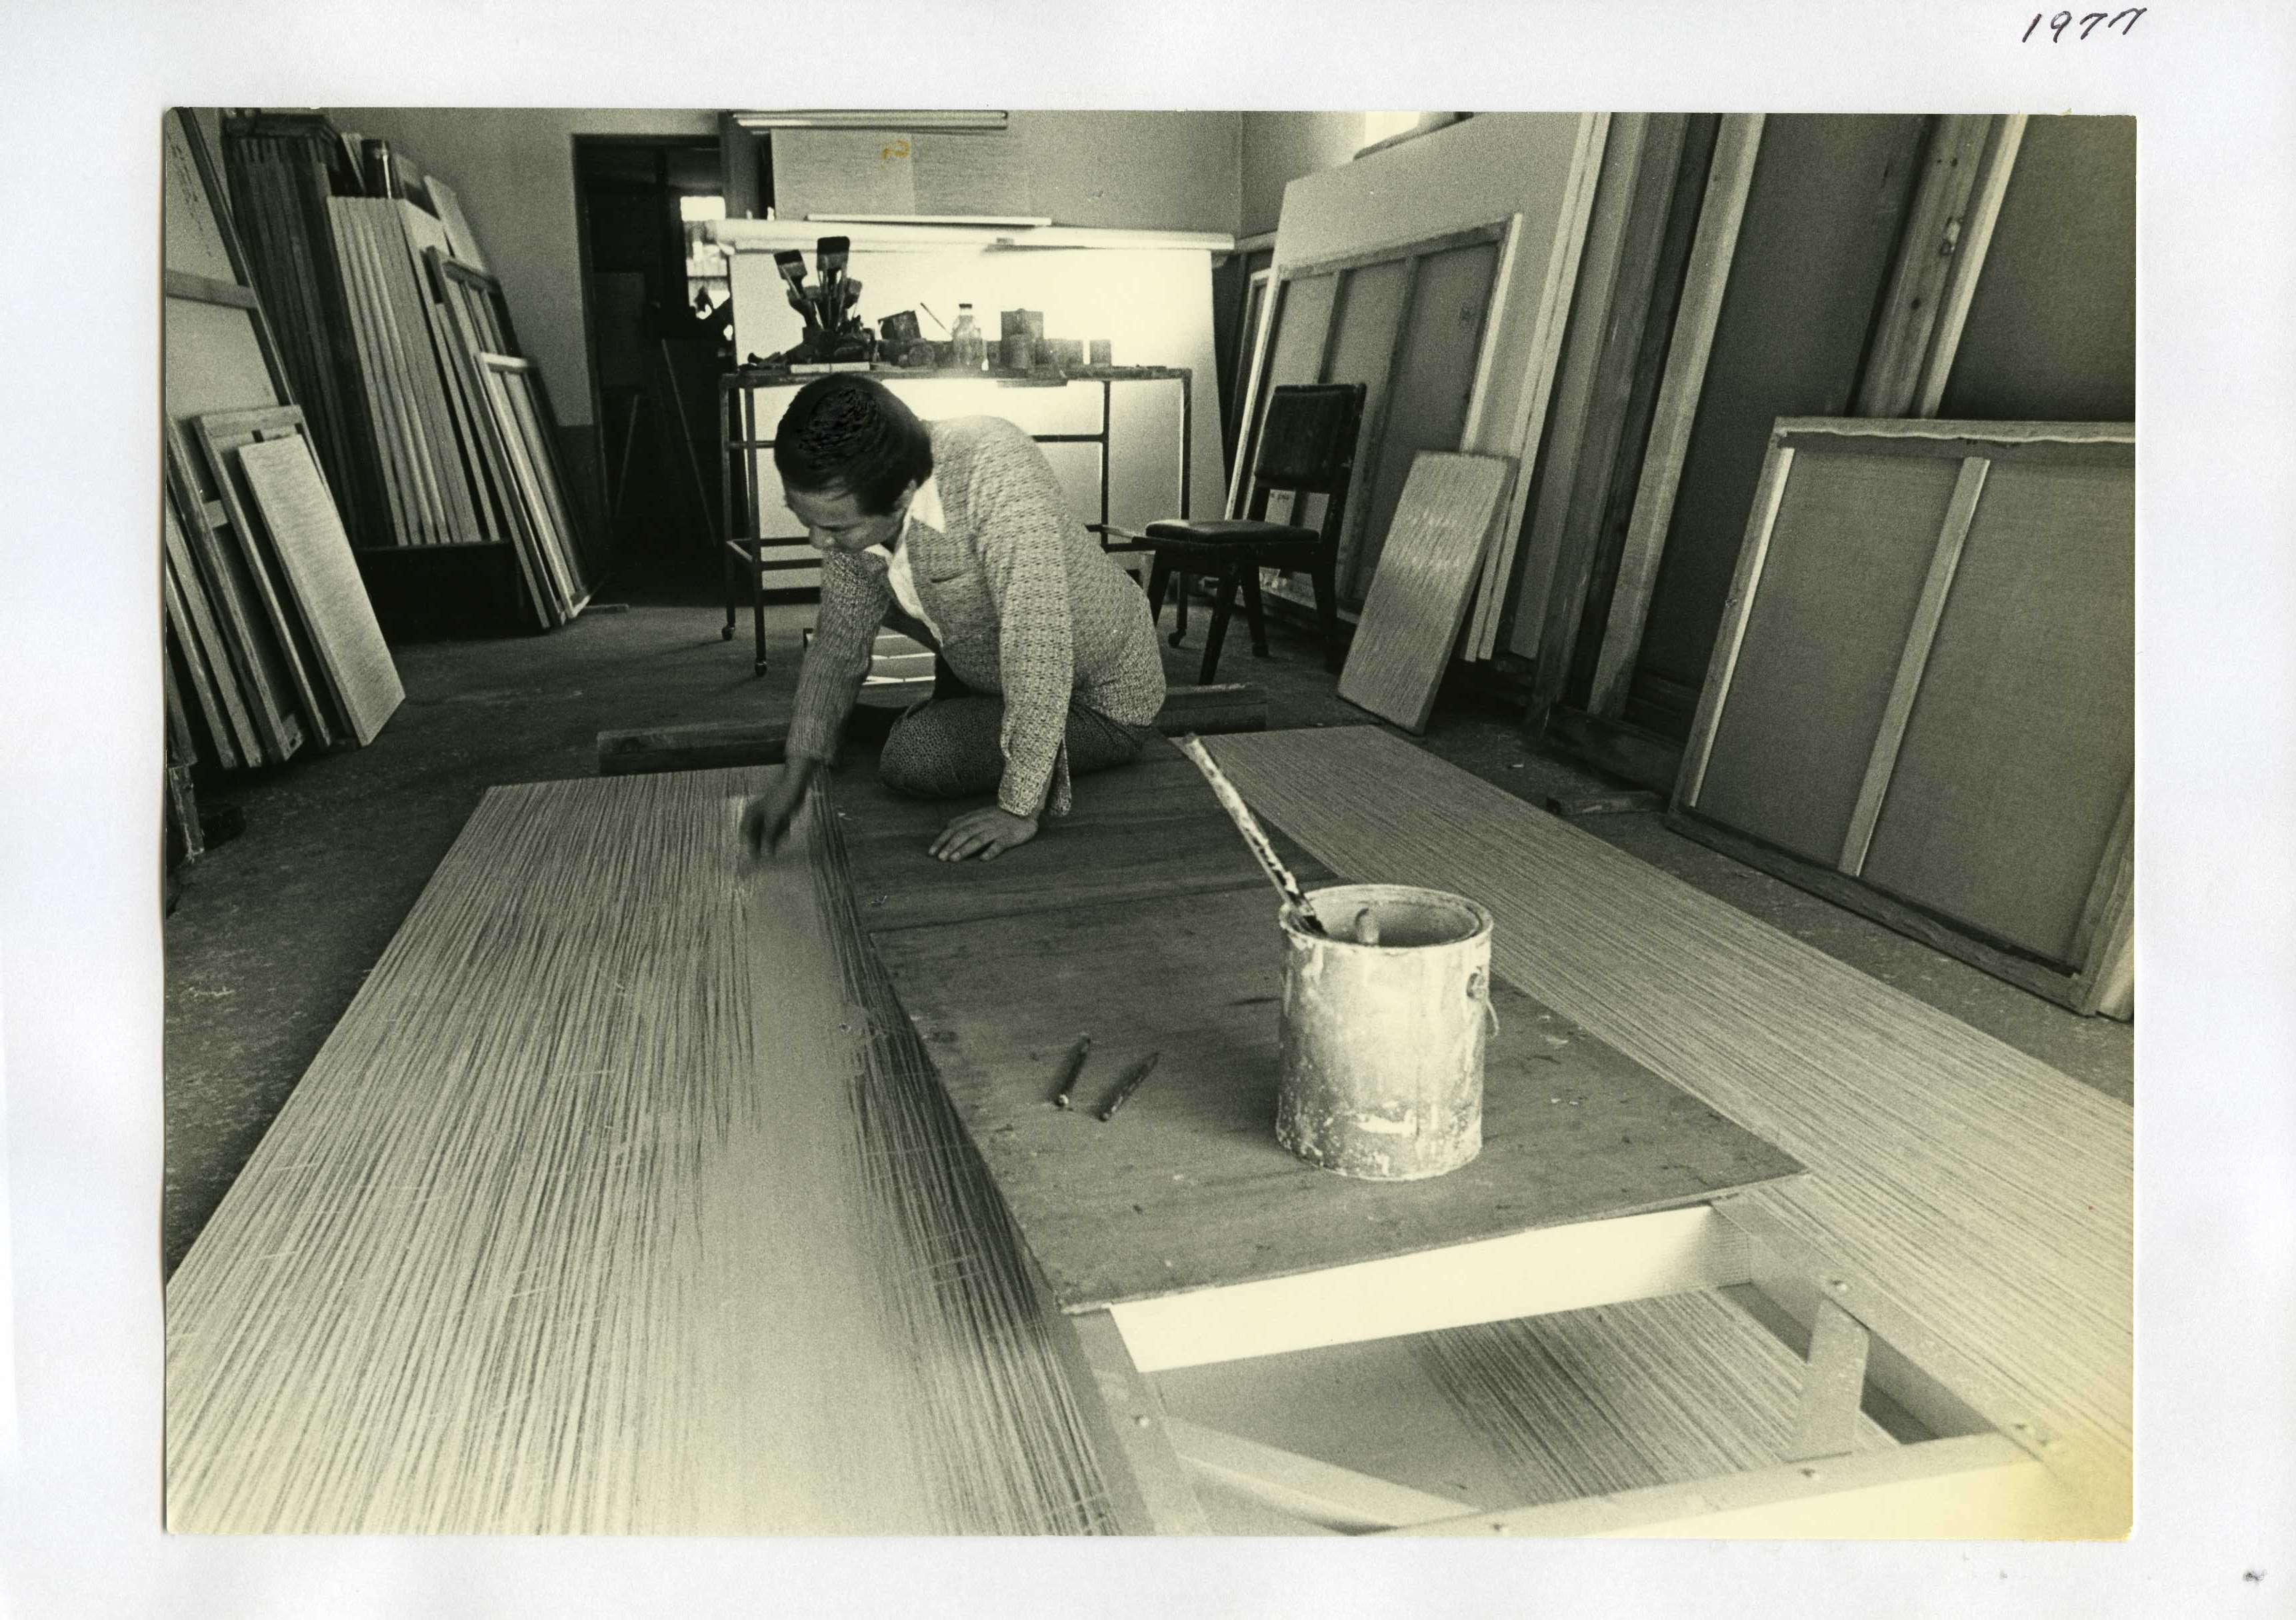 of this work, hereby publish it under the following license: English Park Seo-Bo working on a piece of his Ecriture at his Hapjeong-dong studio in 1977